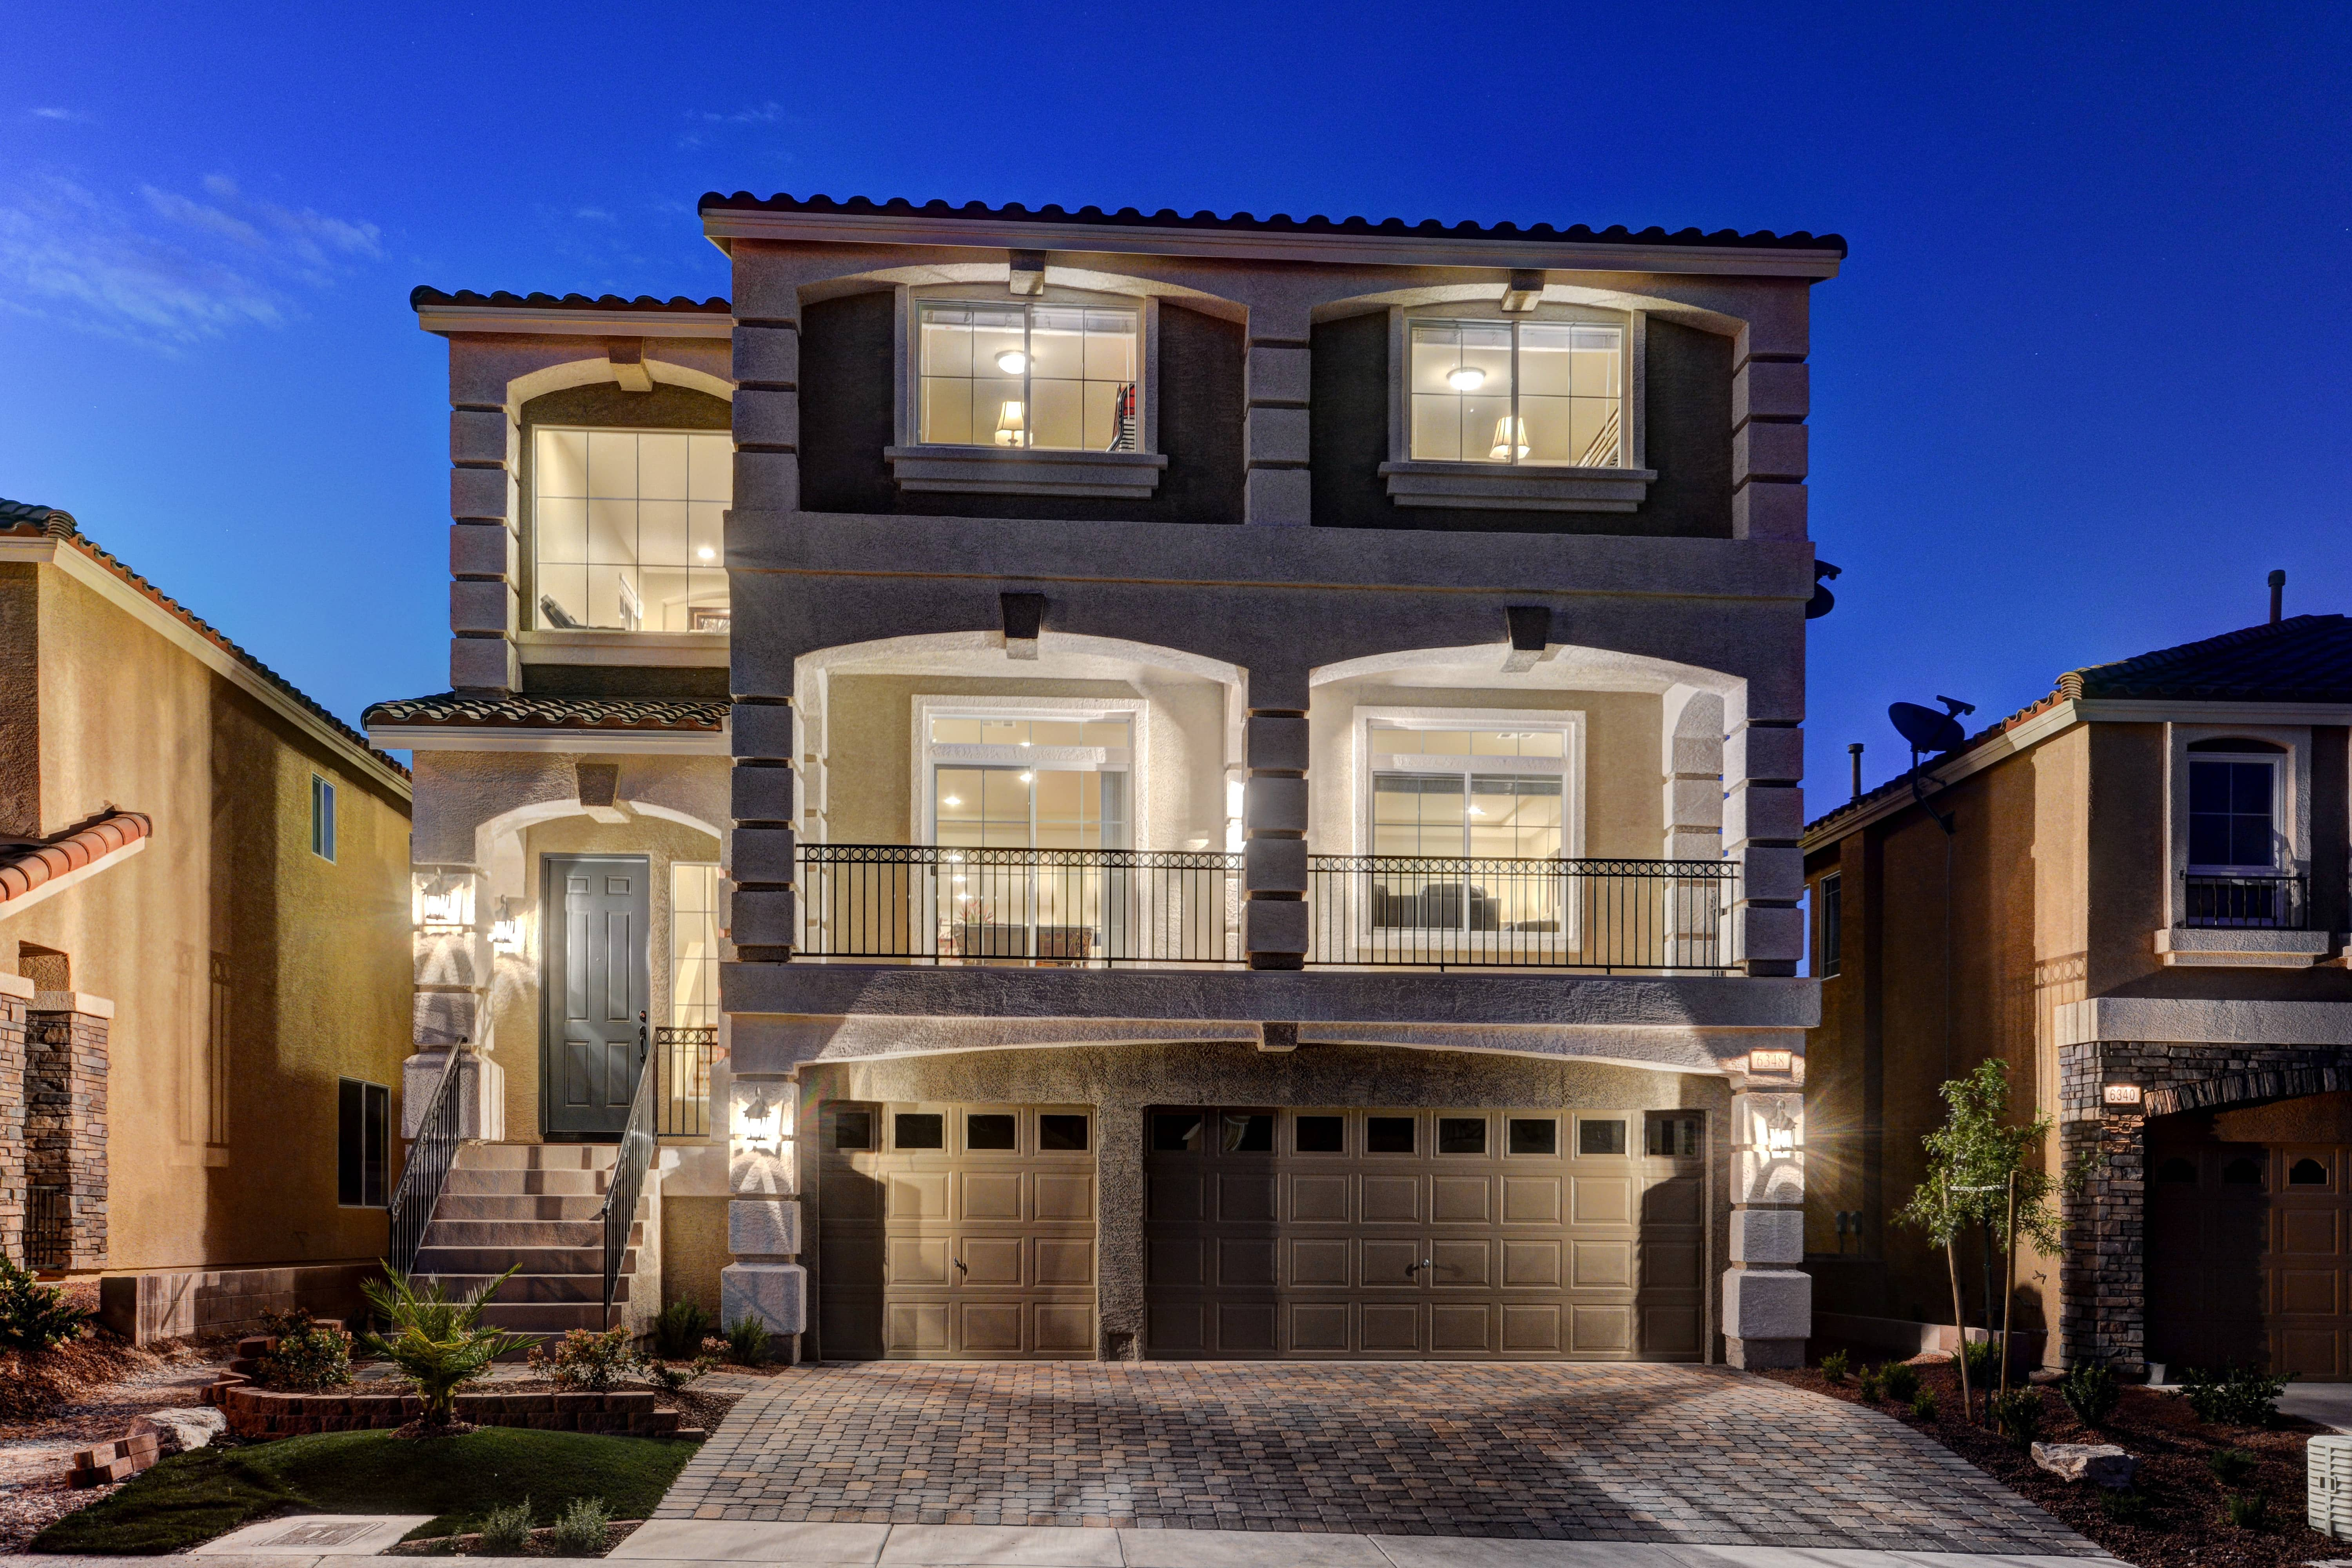 Sell my home LV. sell my home for 1%, Selling a house in Las Vegas?